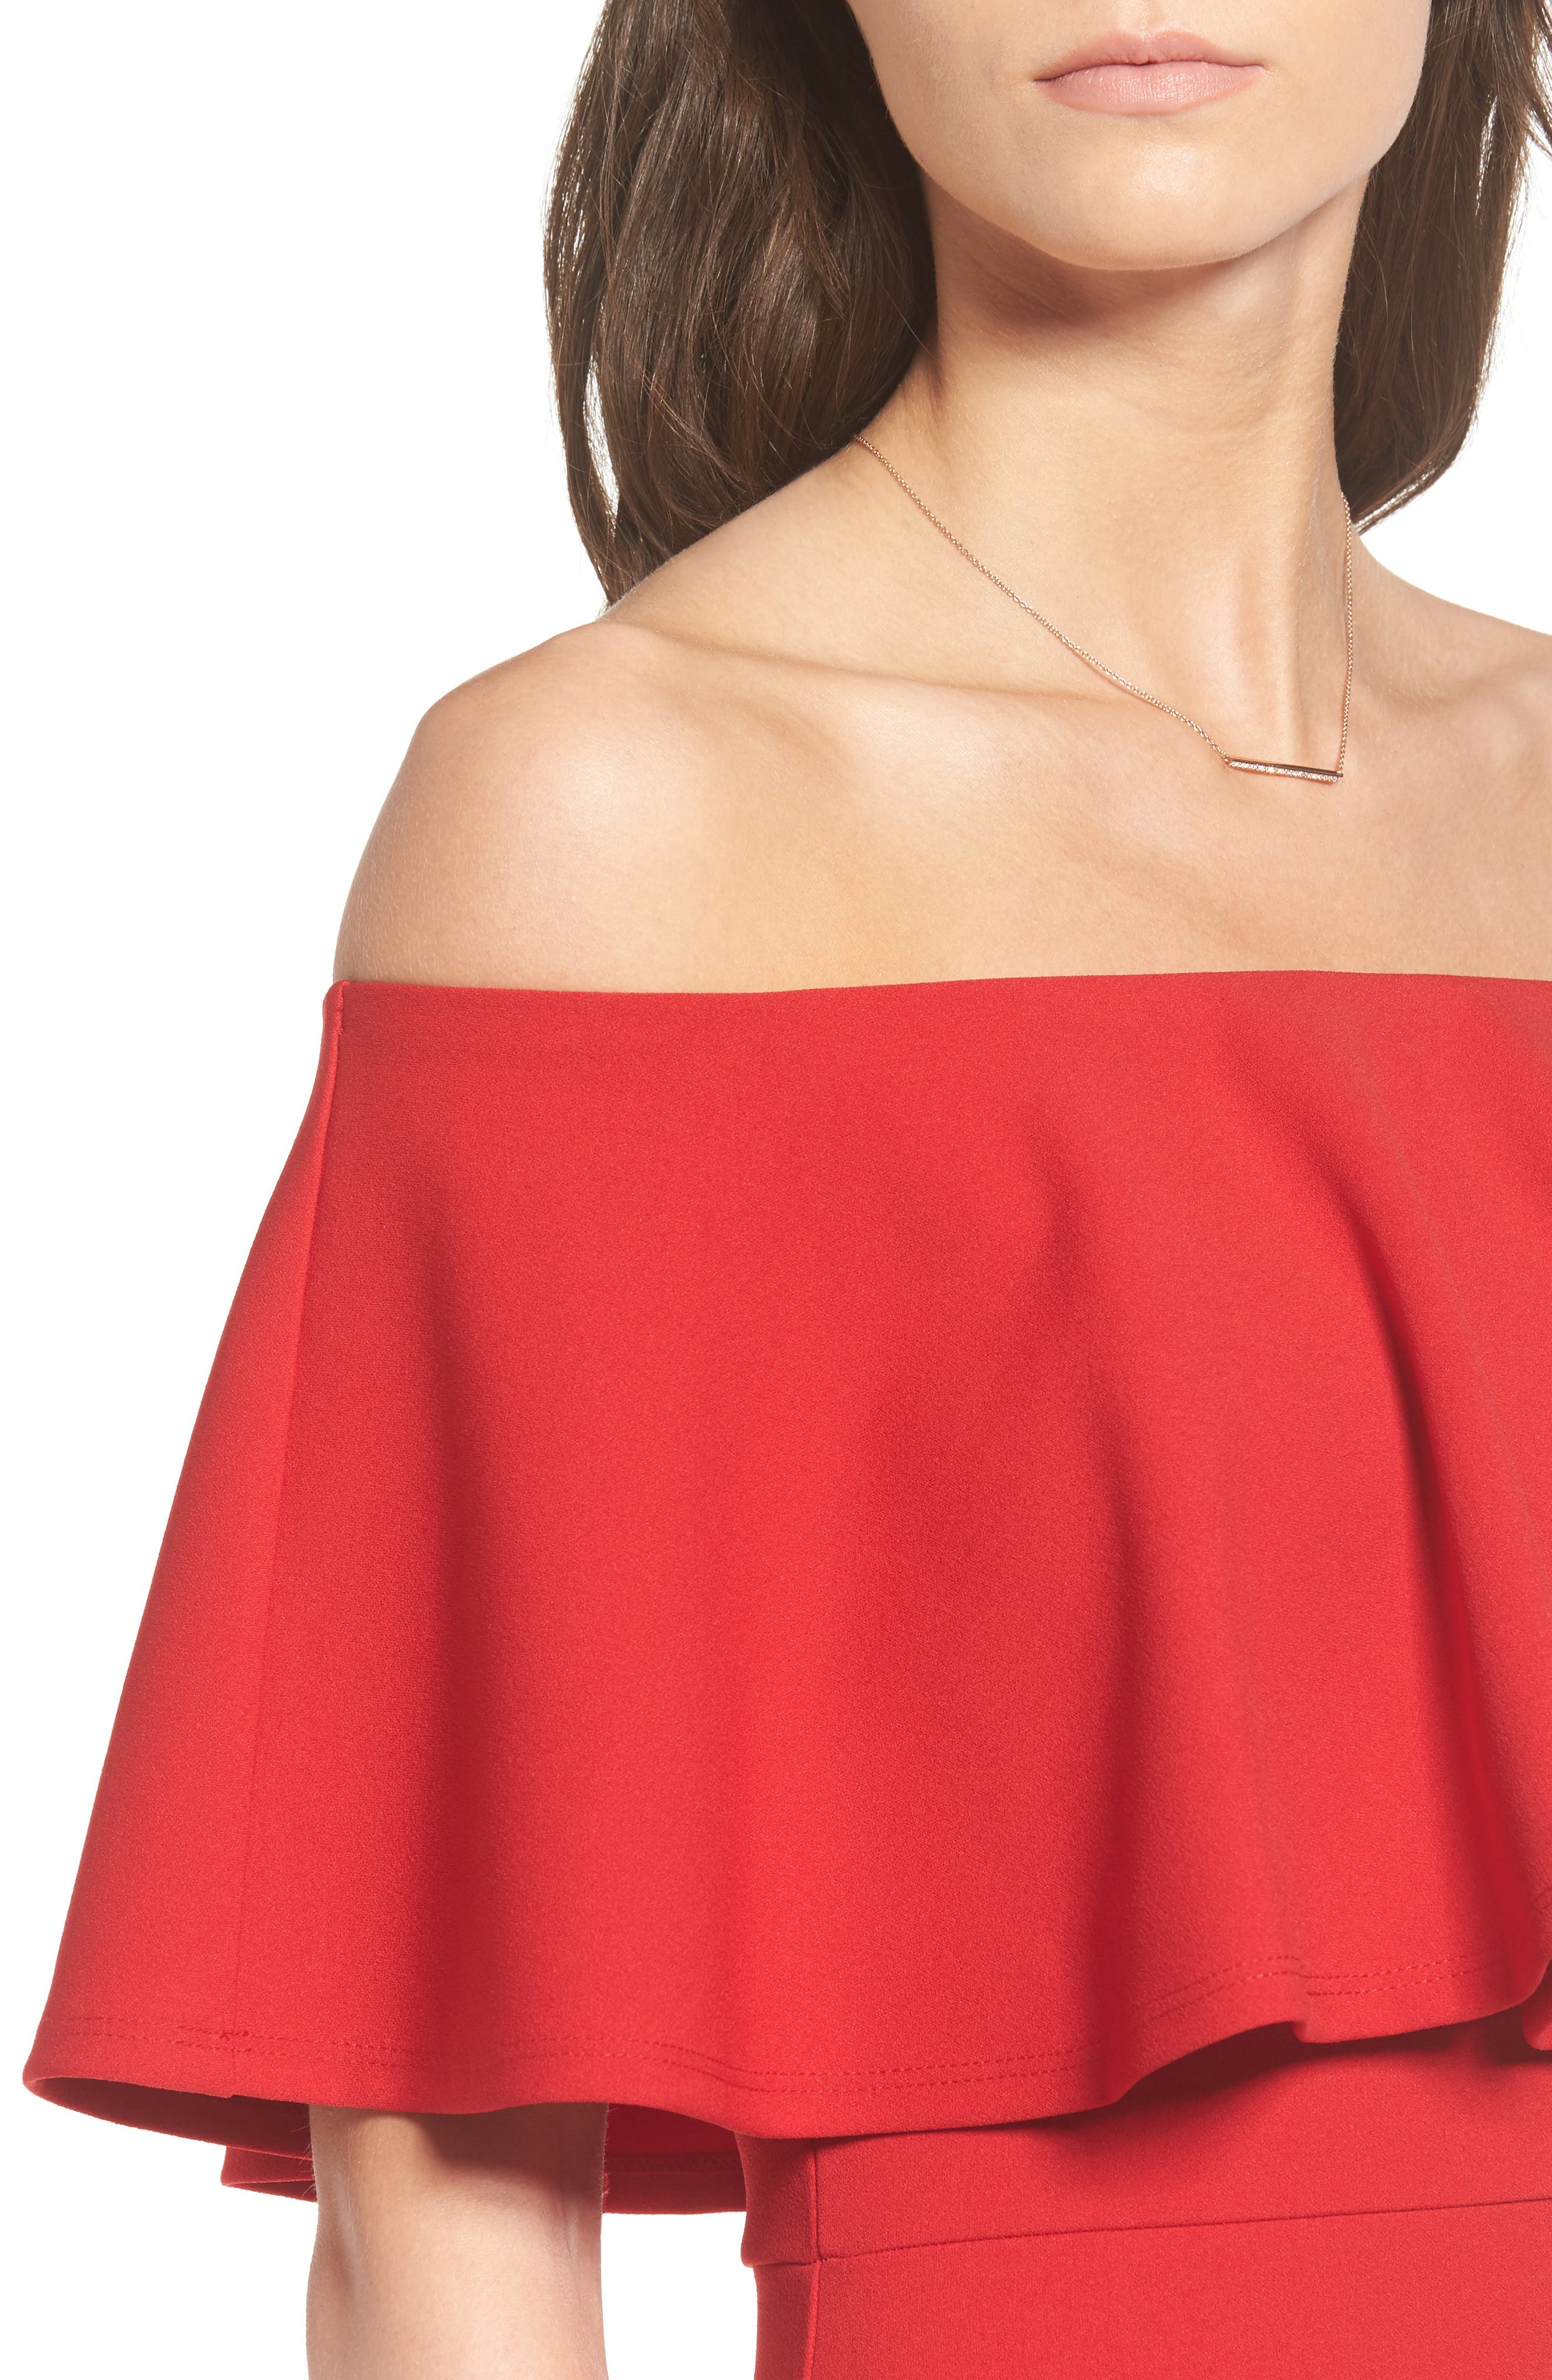 Ruffle Off the Shoulder Body-Con Dress,                             Alternate thumbnail 4, color,                             African Red